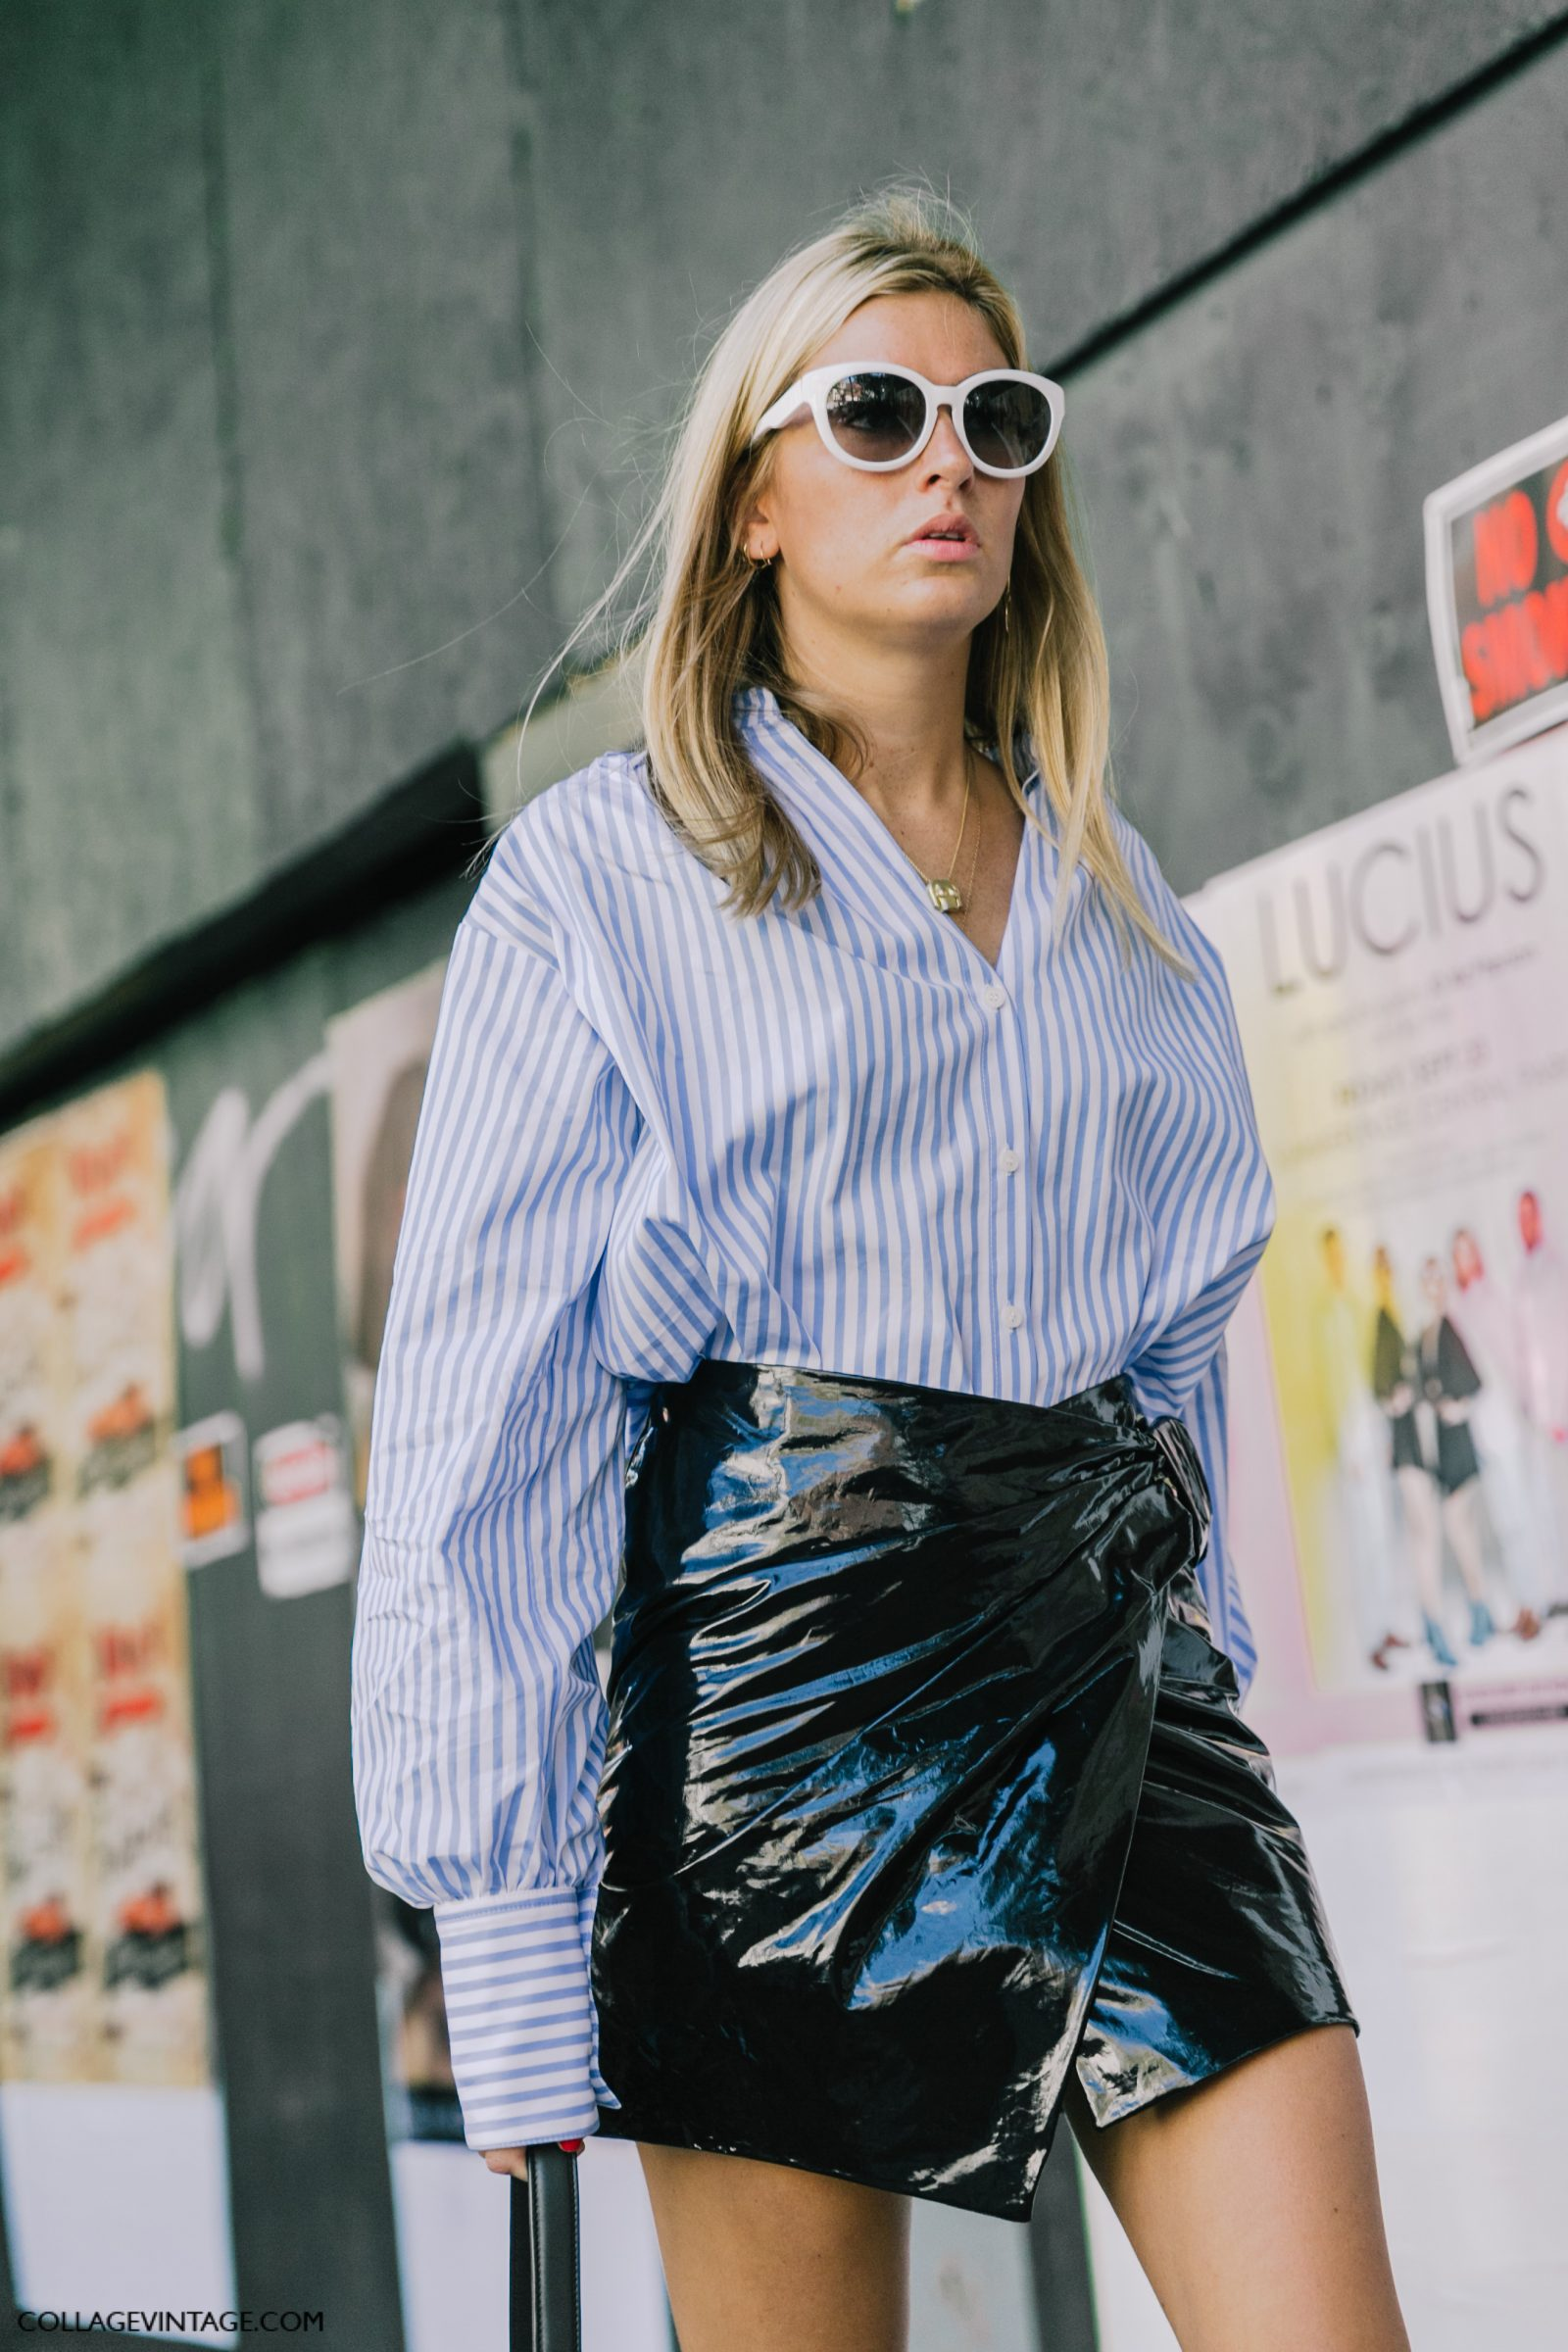 nyfw-new_york_fashion_week_ss17-street_style-outfits-collage_vintage-vintage-mansur_gavriel-rodarte-coach-81